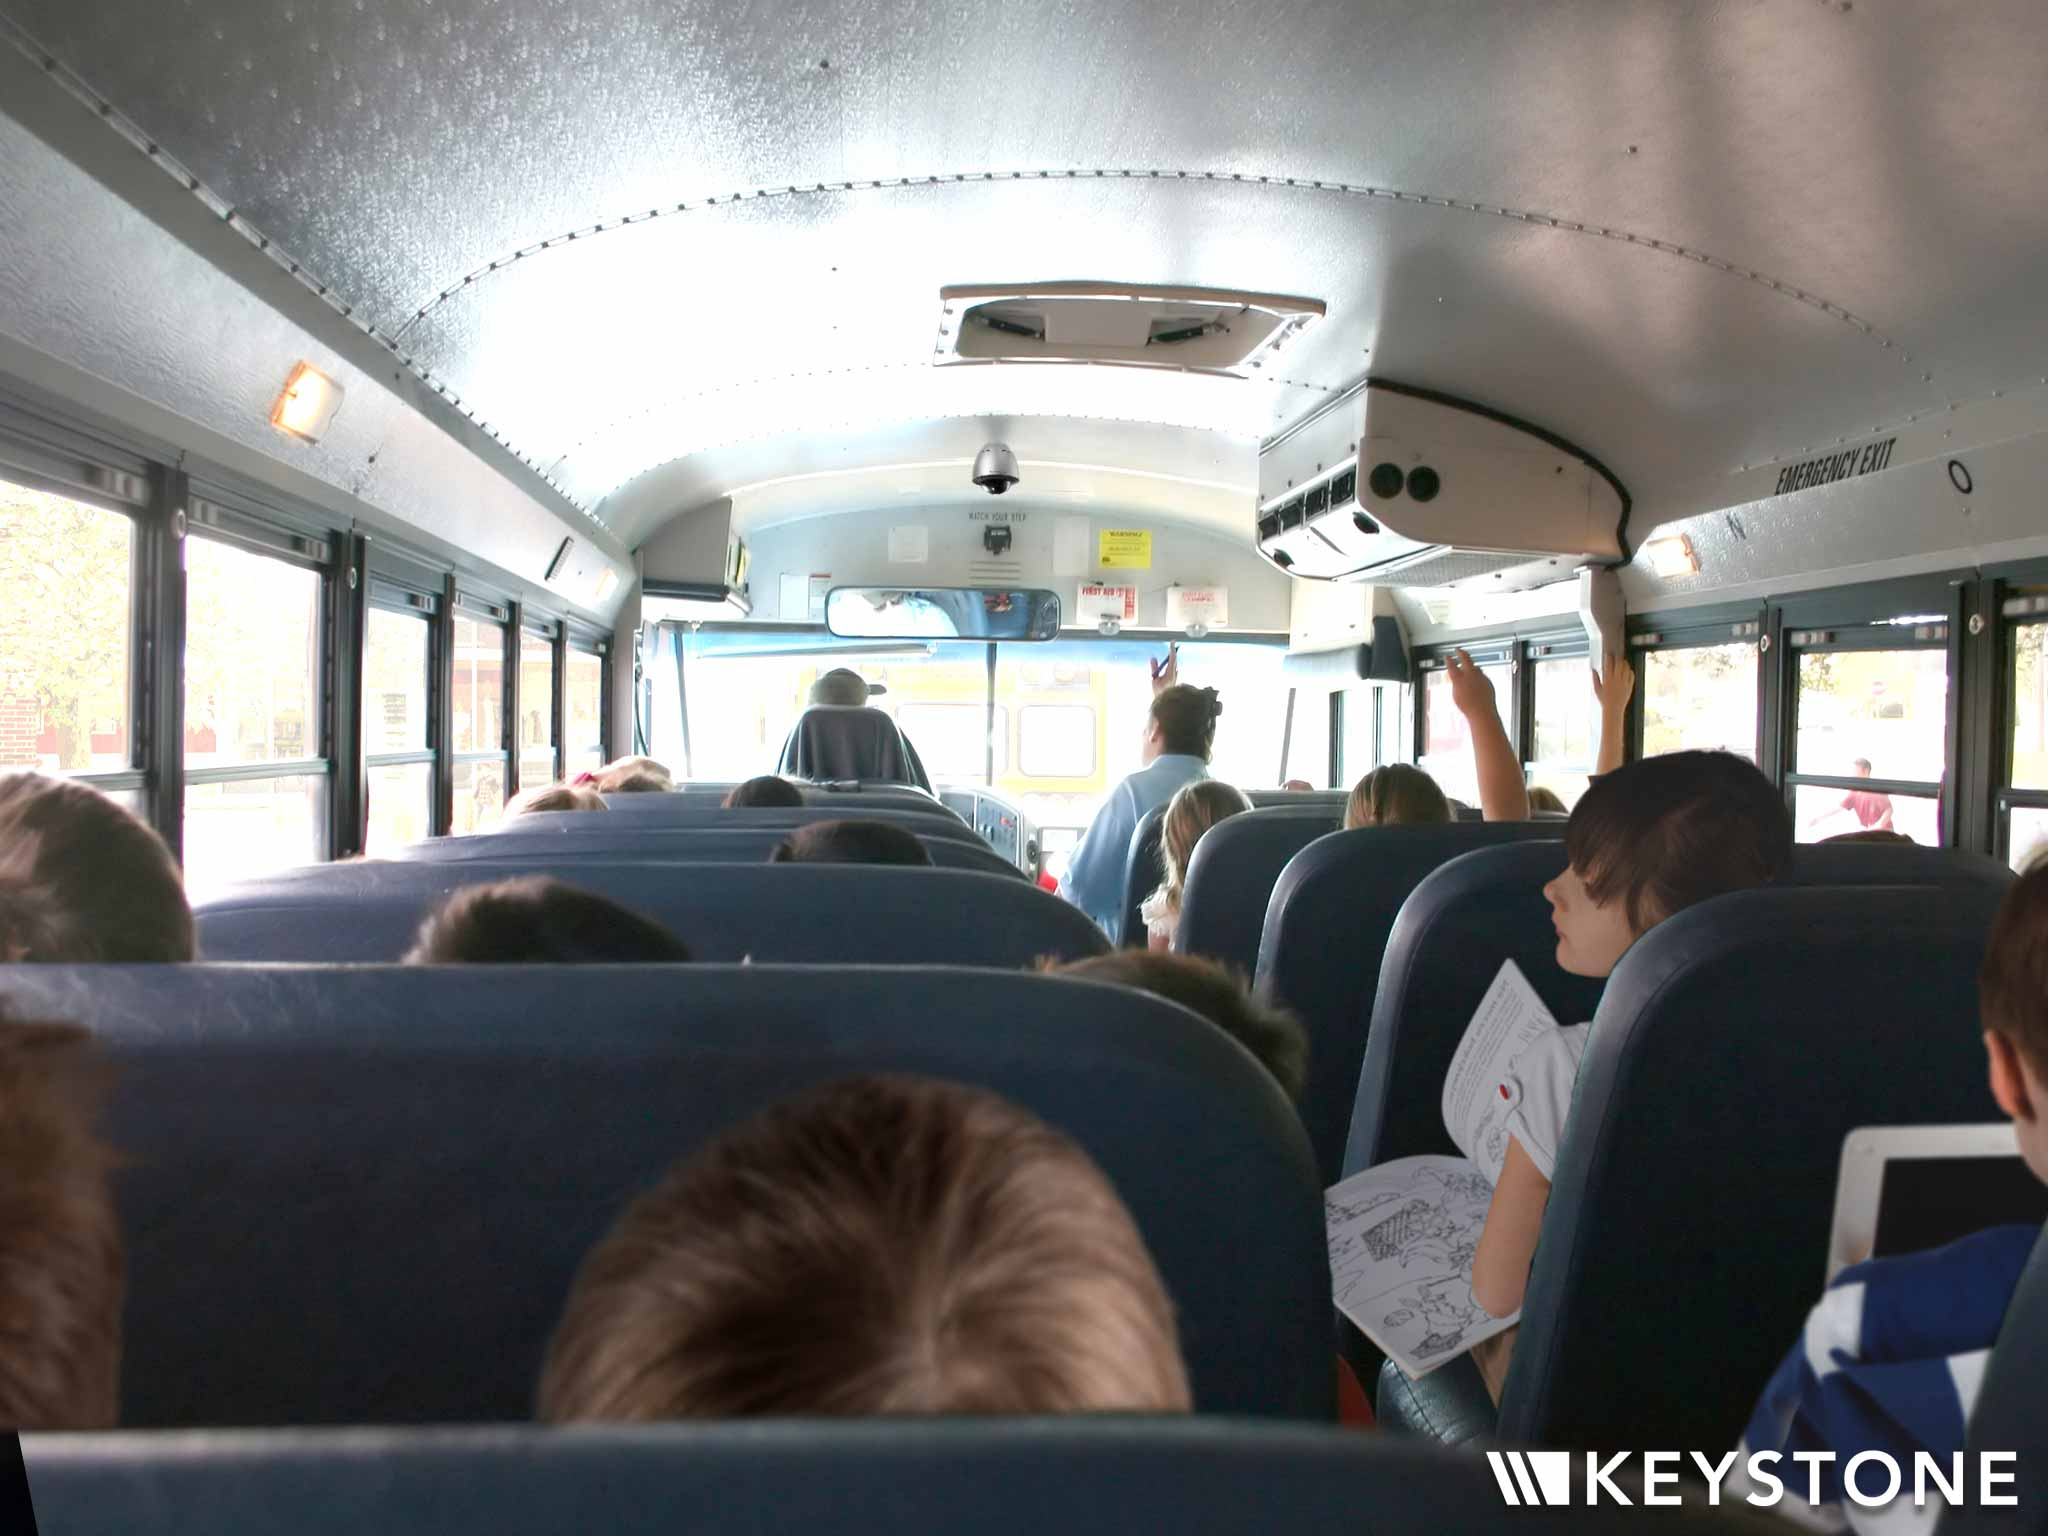 School Bus Insurance - AFS Insurance & Financial Services, Inc